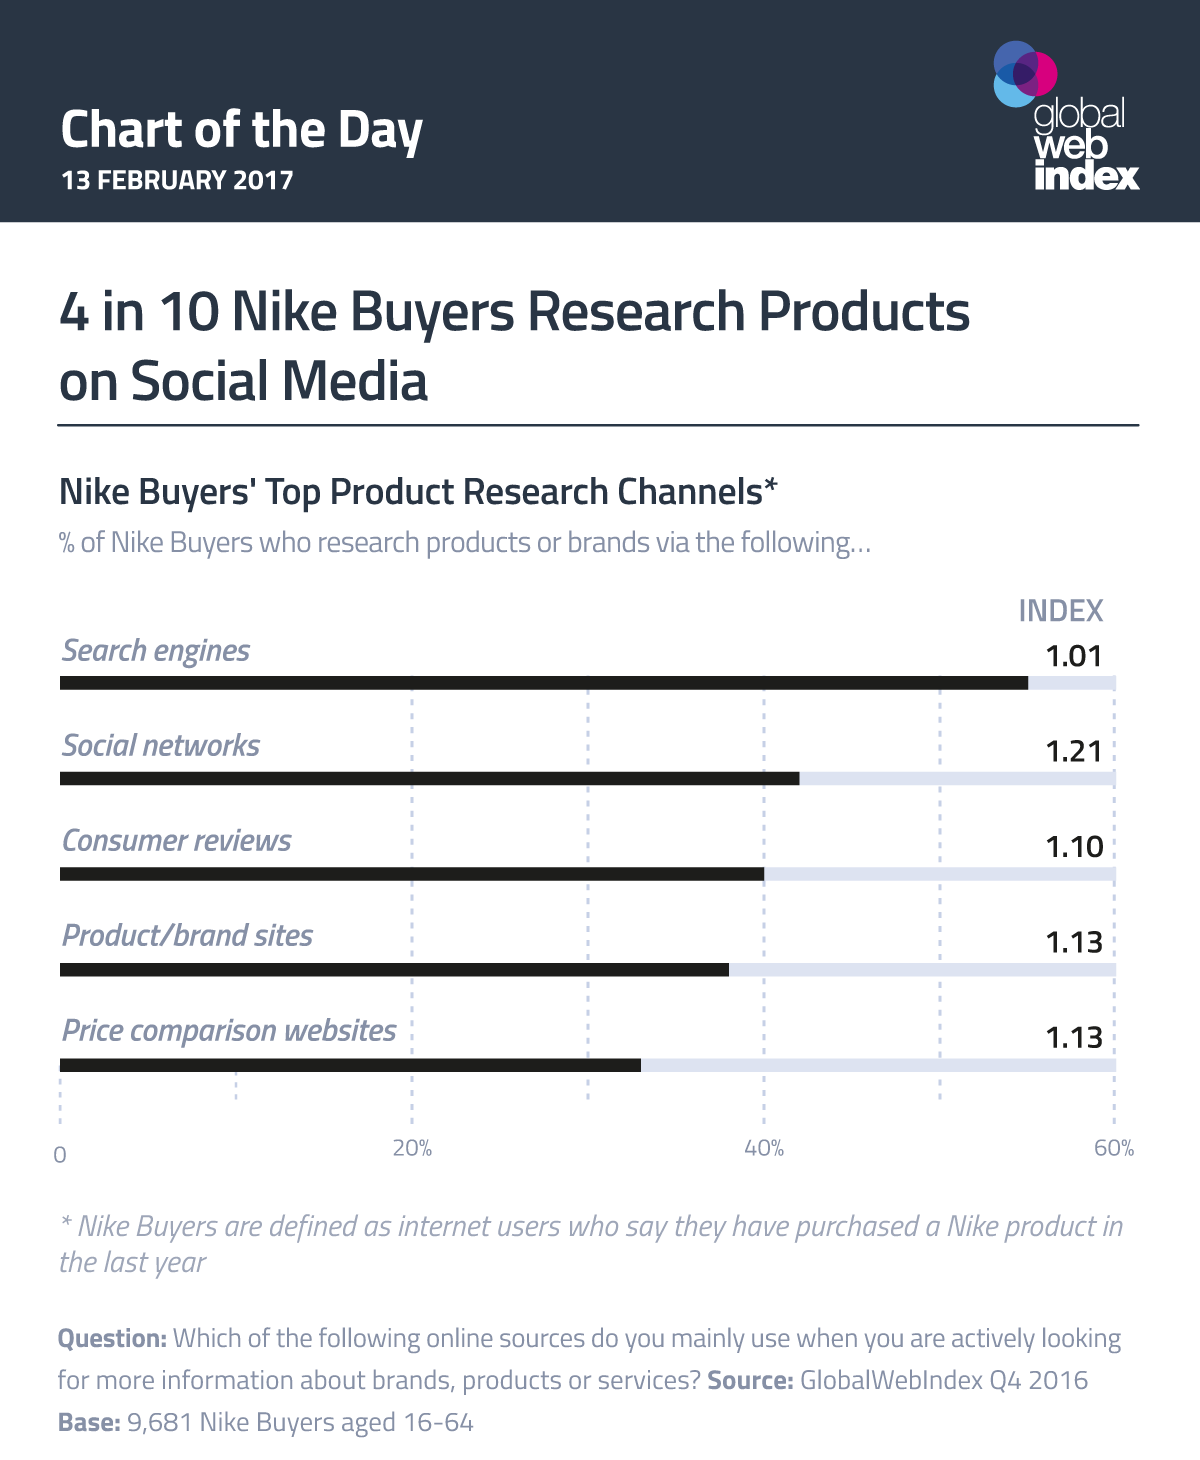 4 in 10 Nike Buyers Research Products on Social Media